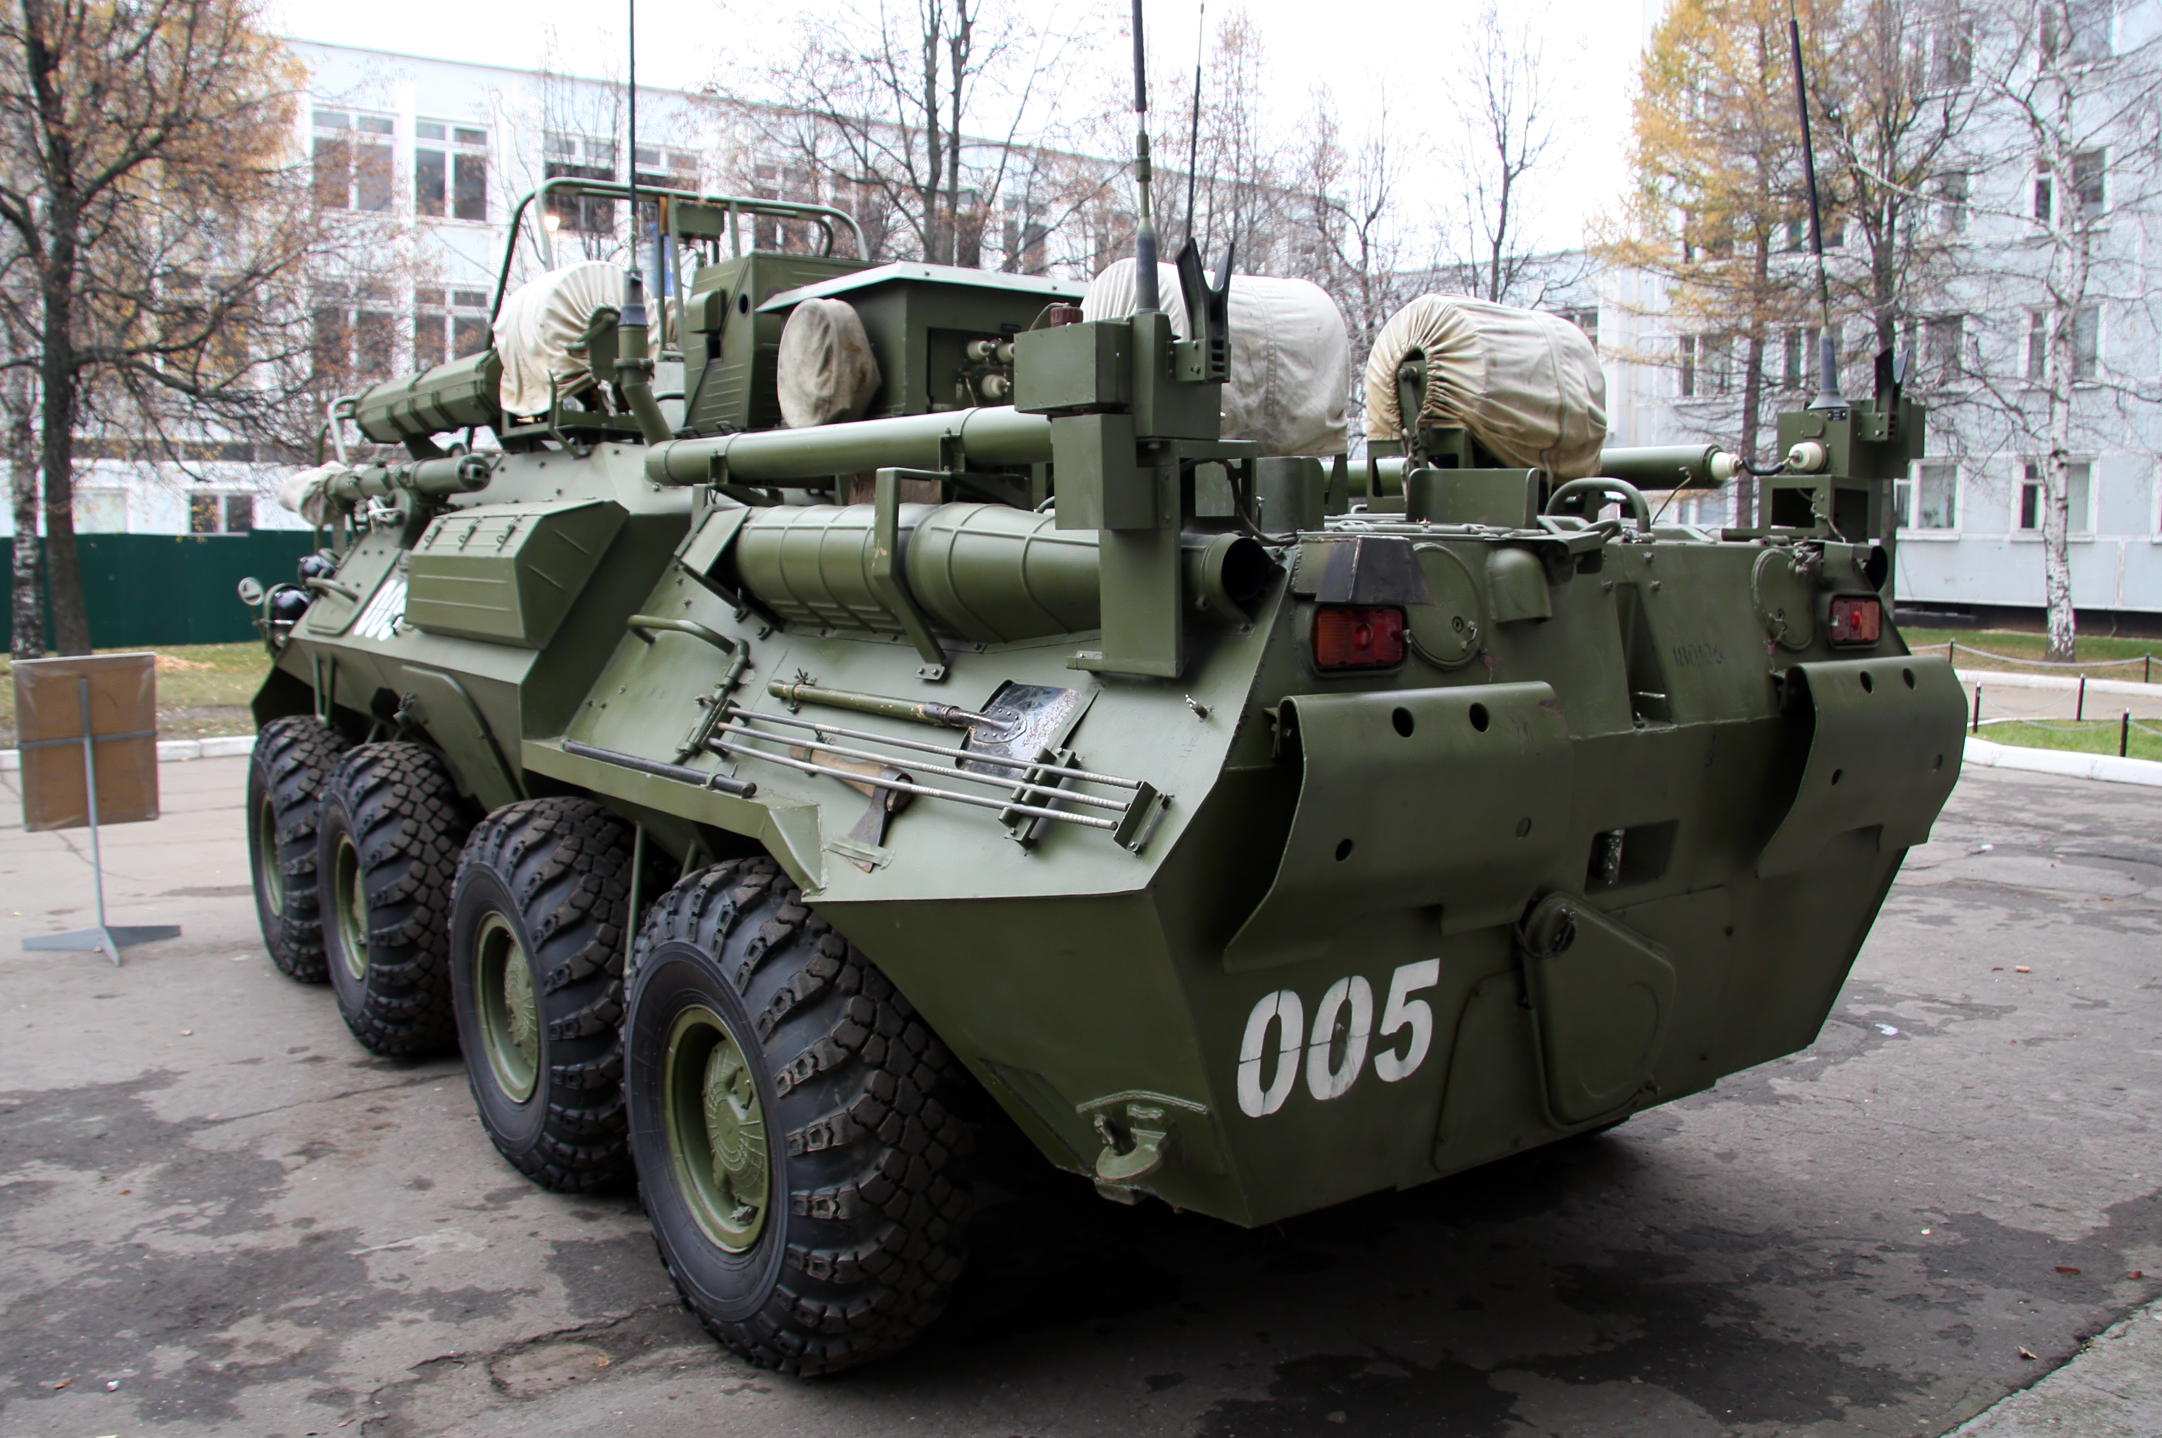 The 74th Guards Motorized Rifle Brigade received the first upgraded BMP-2M with Berehok module 44